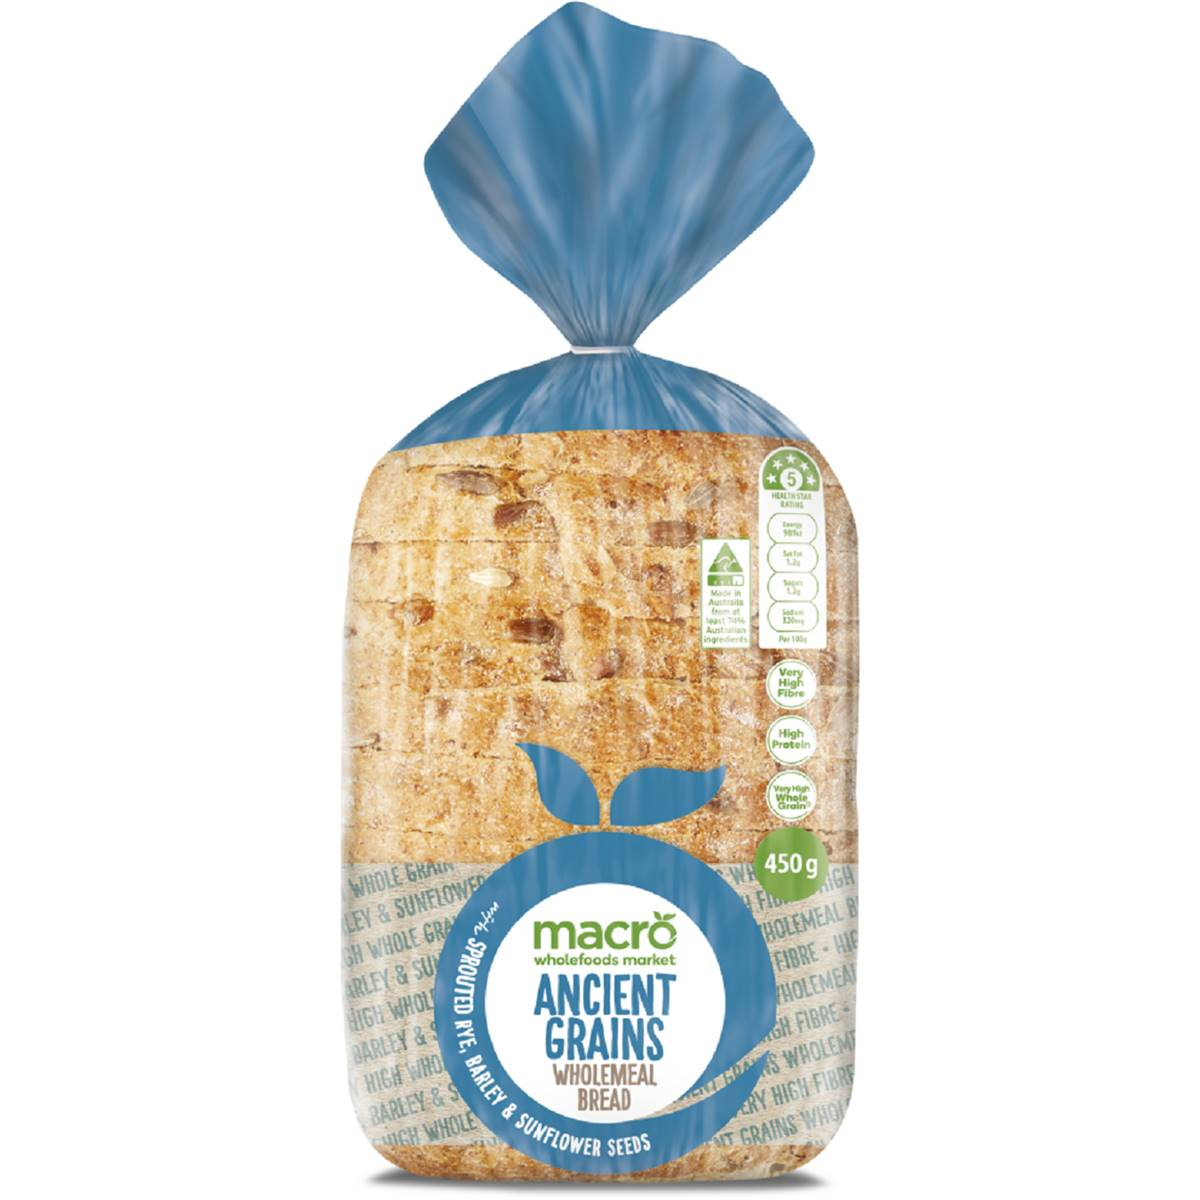 Macro Ancient Grain & Sprout Loaf Bread